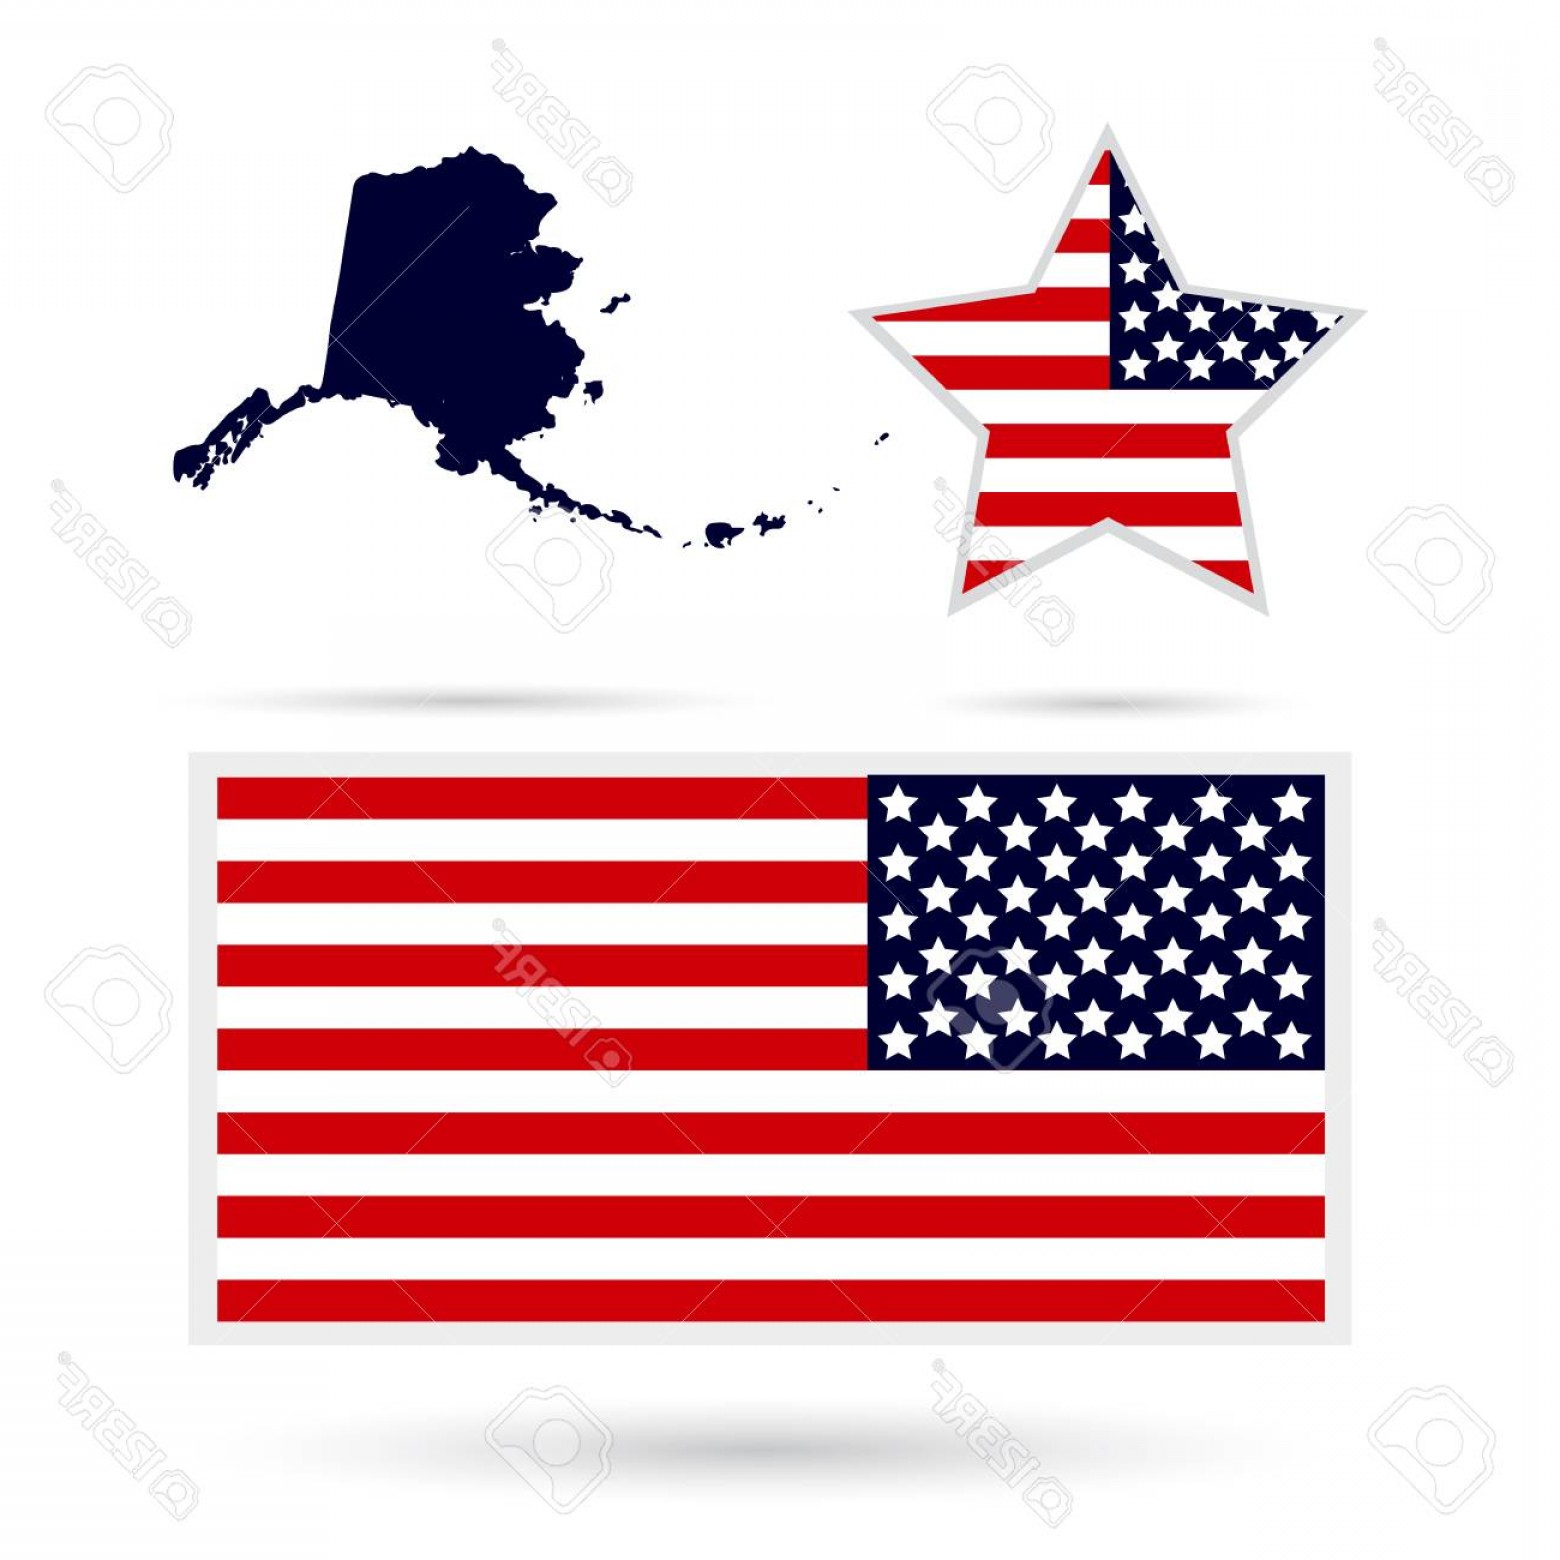 Alaska State White Background Vectors: Photostock Vector Map Of The U S State Of Alaska On A White Background American Flag